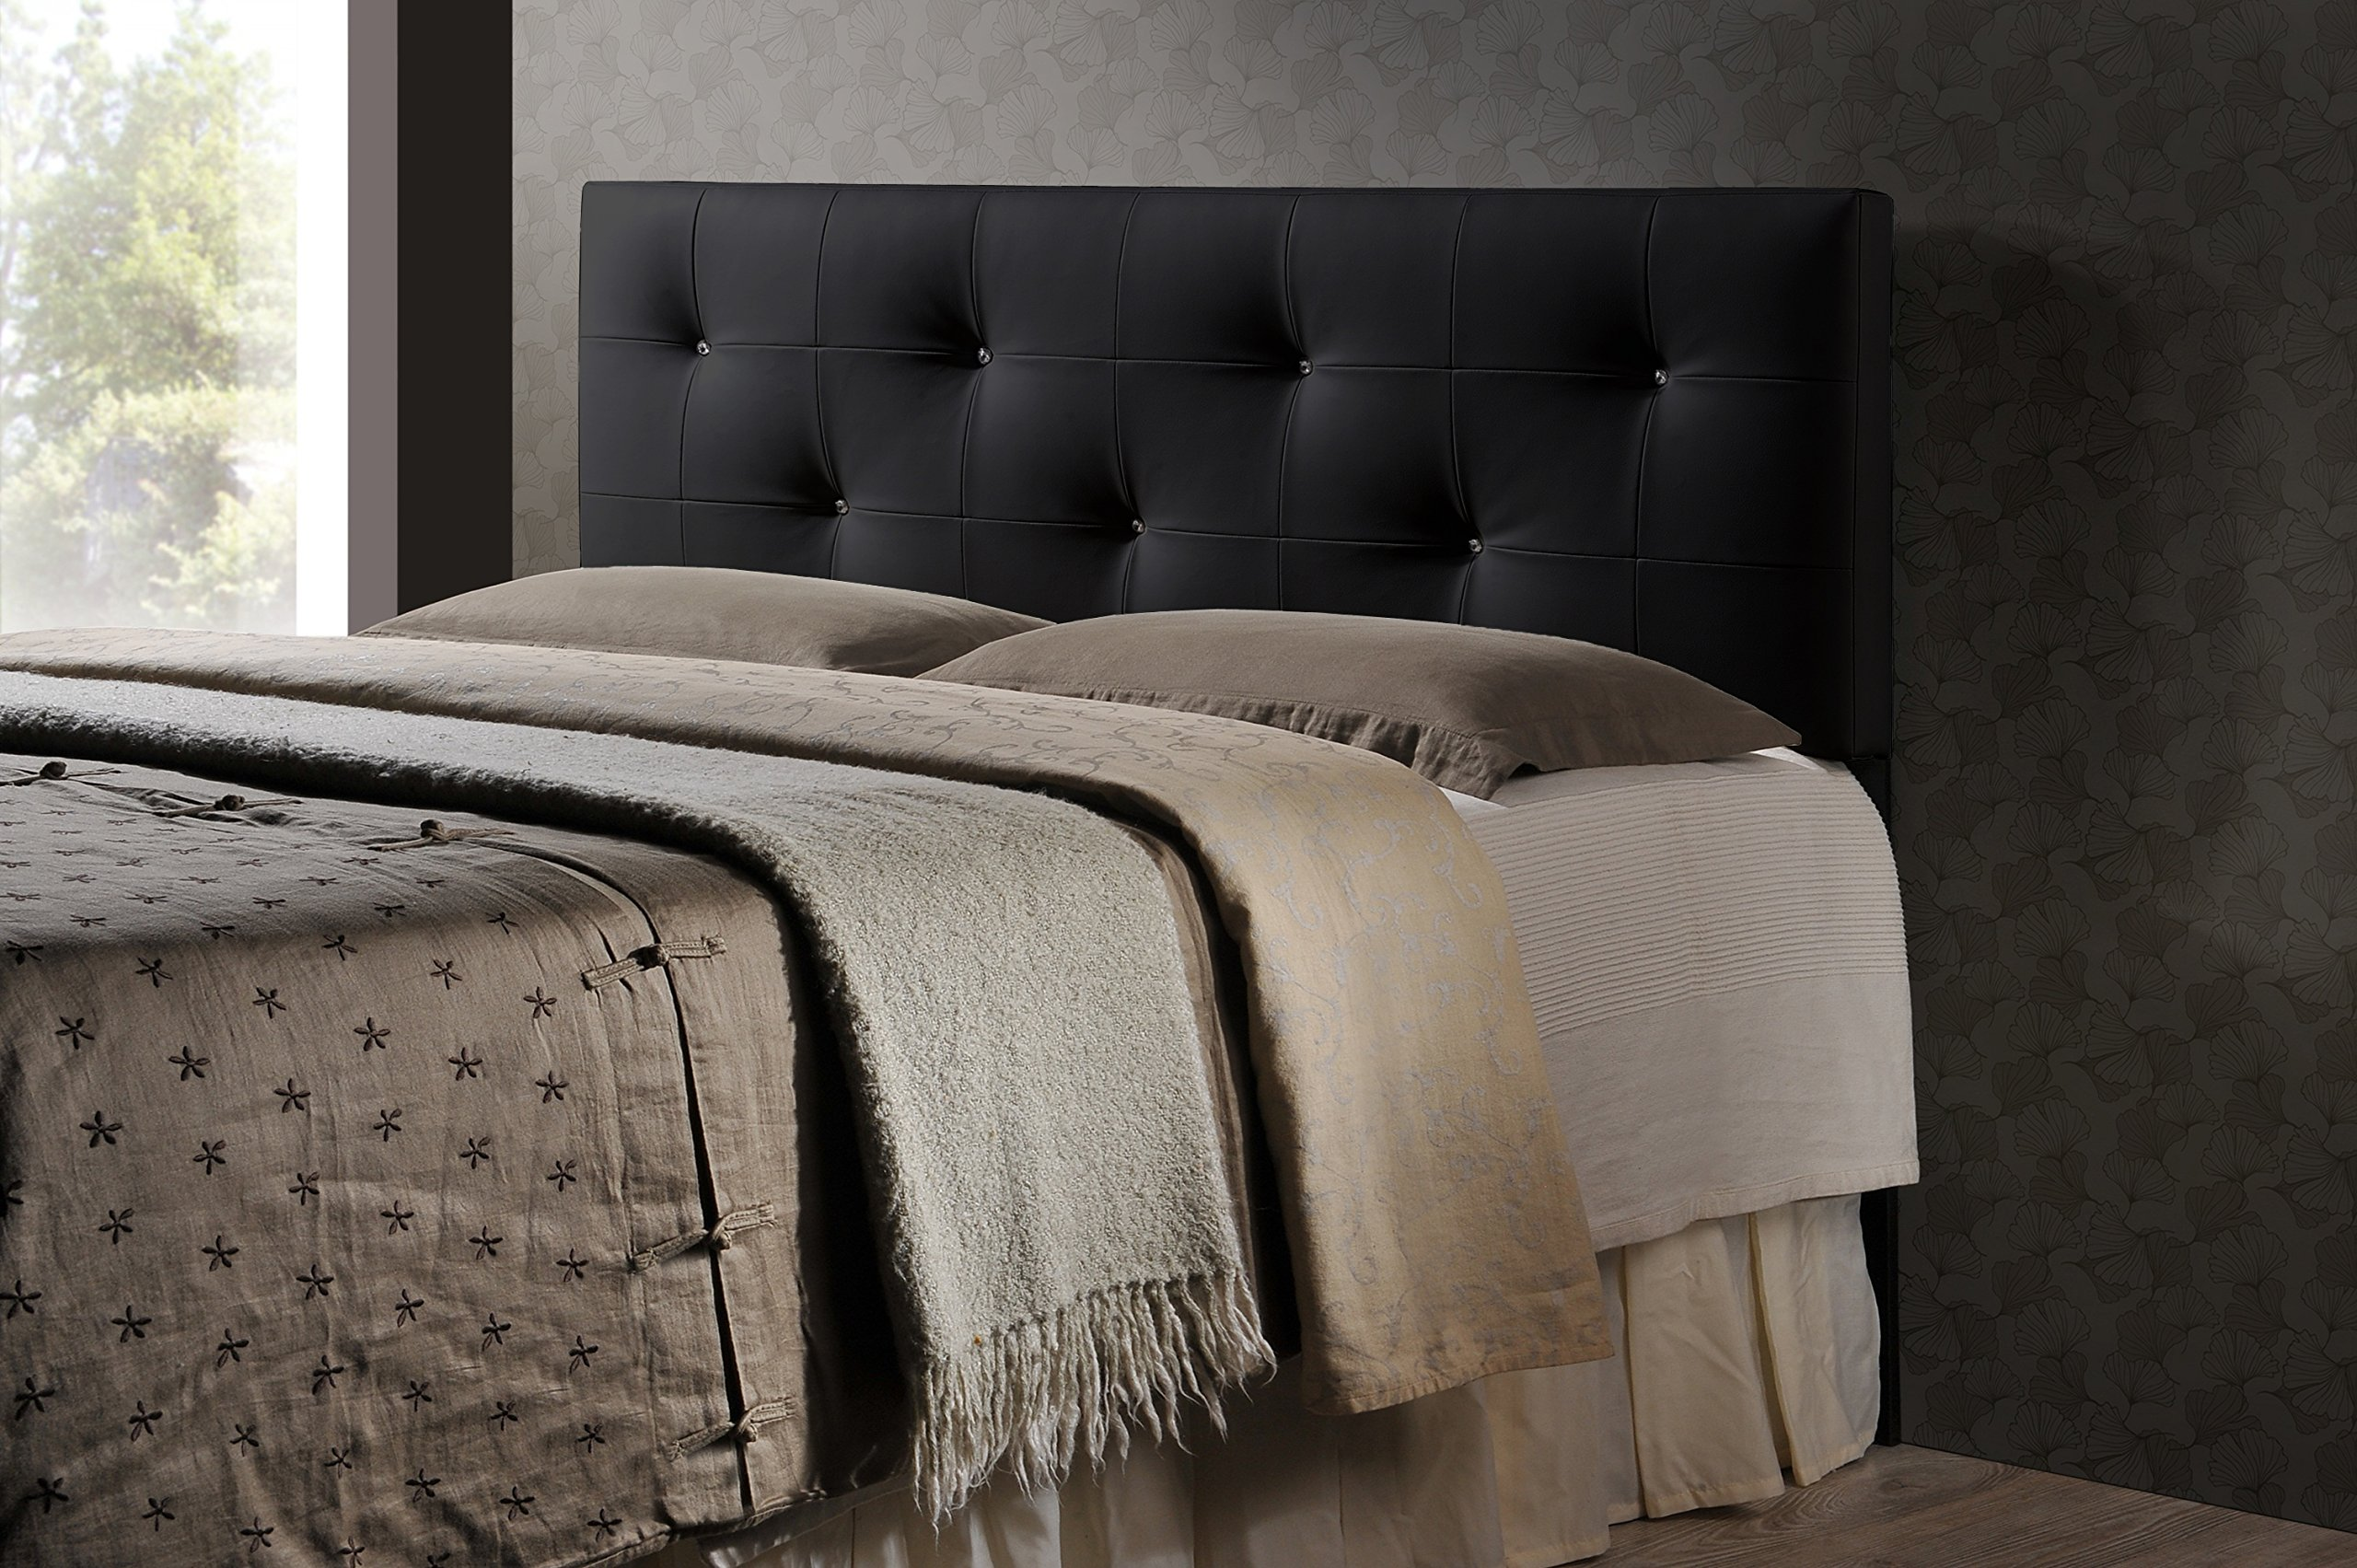 Baxton Studio Wholesale Interiors Dalini Modern and Contemporary Faux Leather Headboard with Faux Crystal Buttons, King, Black by Baxton Studio